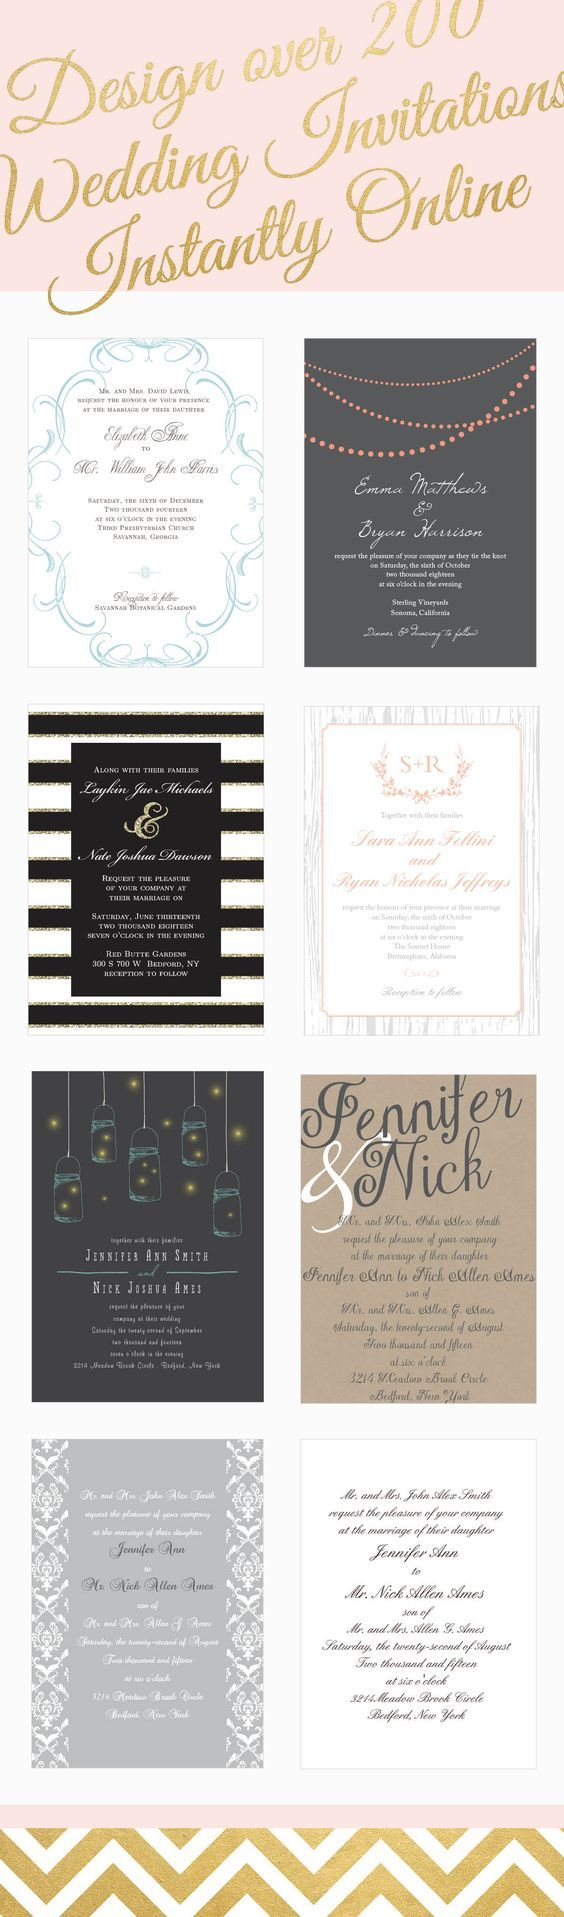 0a235f59e4e00413afb2e1c69714aad6 wedding invitations online shower invitations best 25 wedding invitations online ideas on pinterest,Design Your Wedding Invitations Online